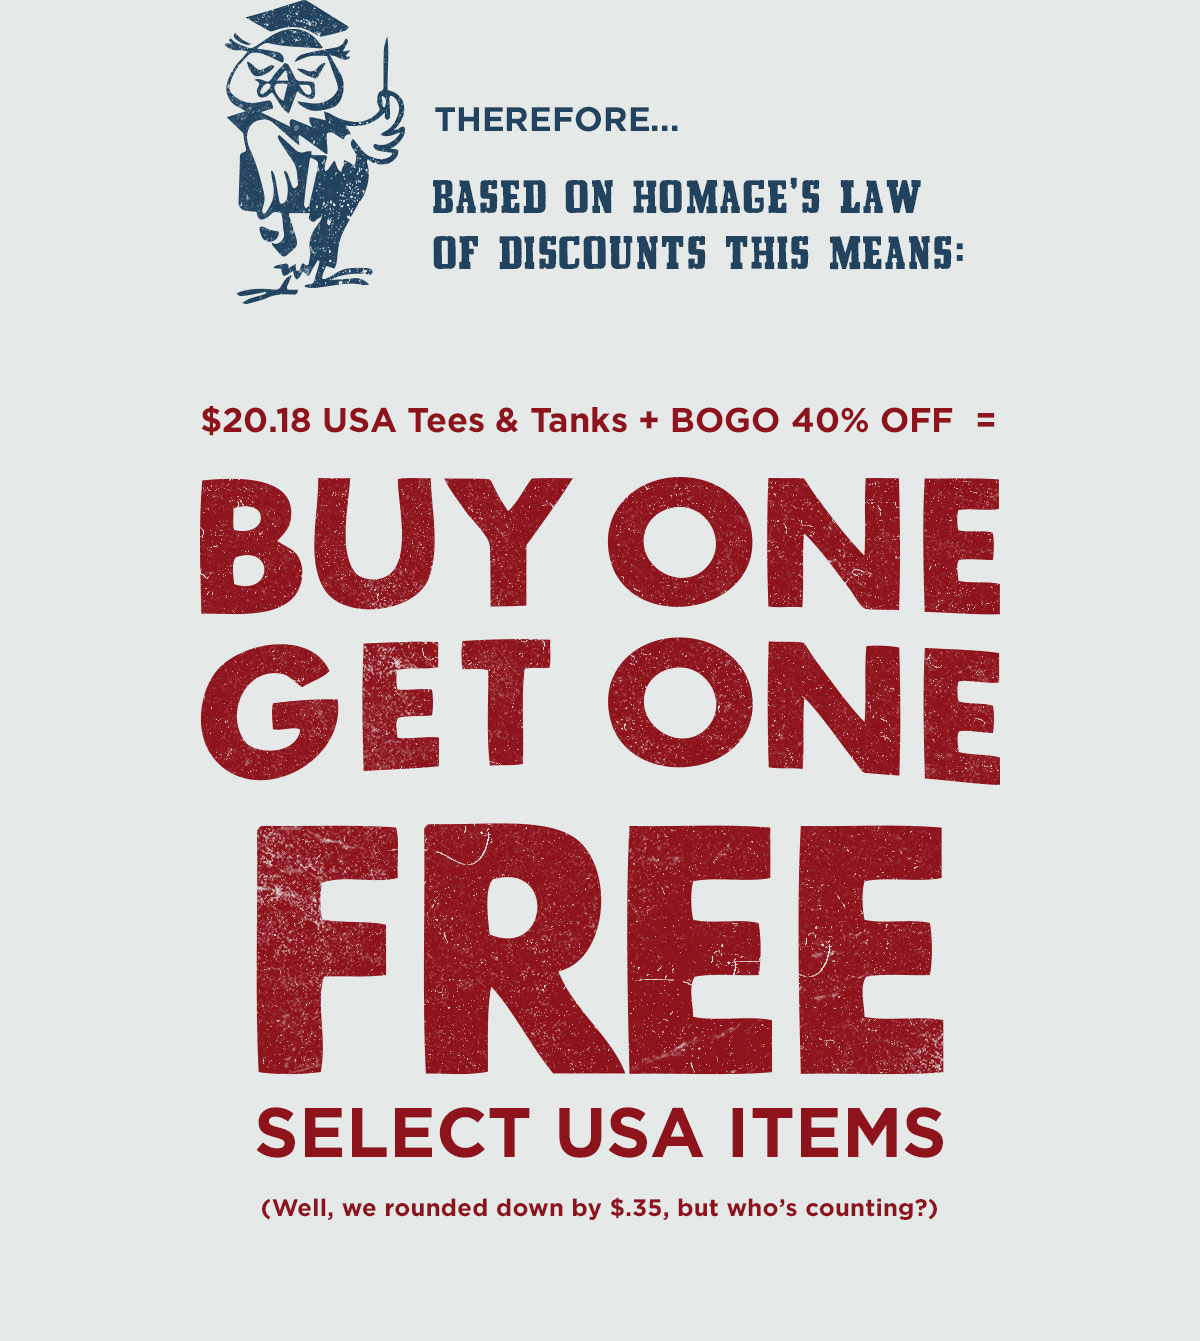 Therefore...Based on HOMAGE's Law of Discounts This Means: $20.18 USA Tees and Tanks + BOGO 40% OFF = Buy One, Get One FREE Select USA Items